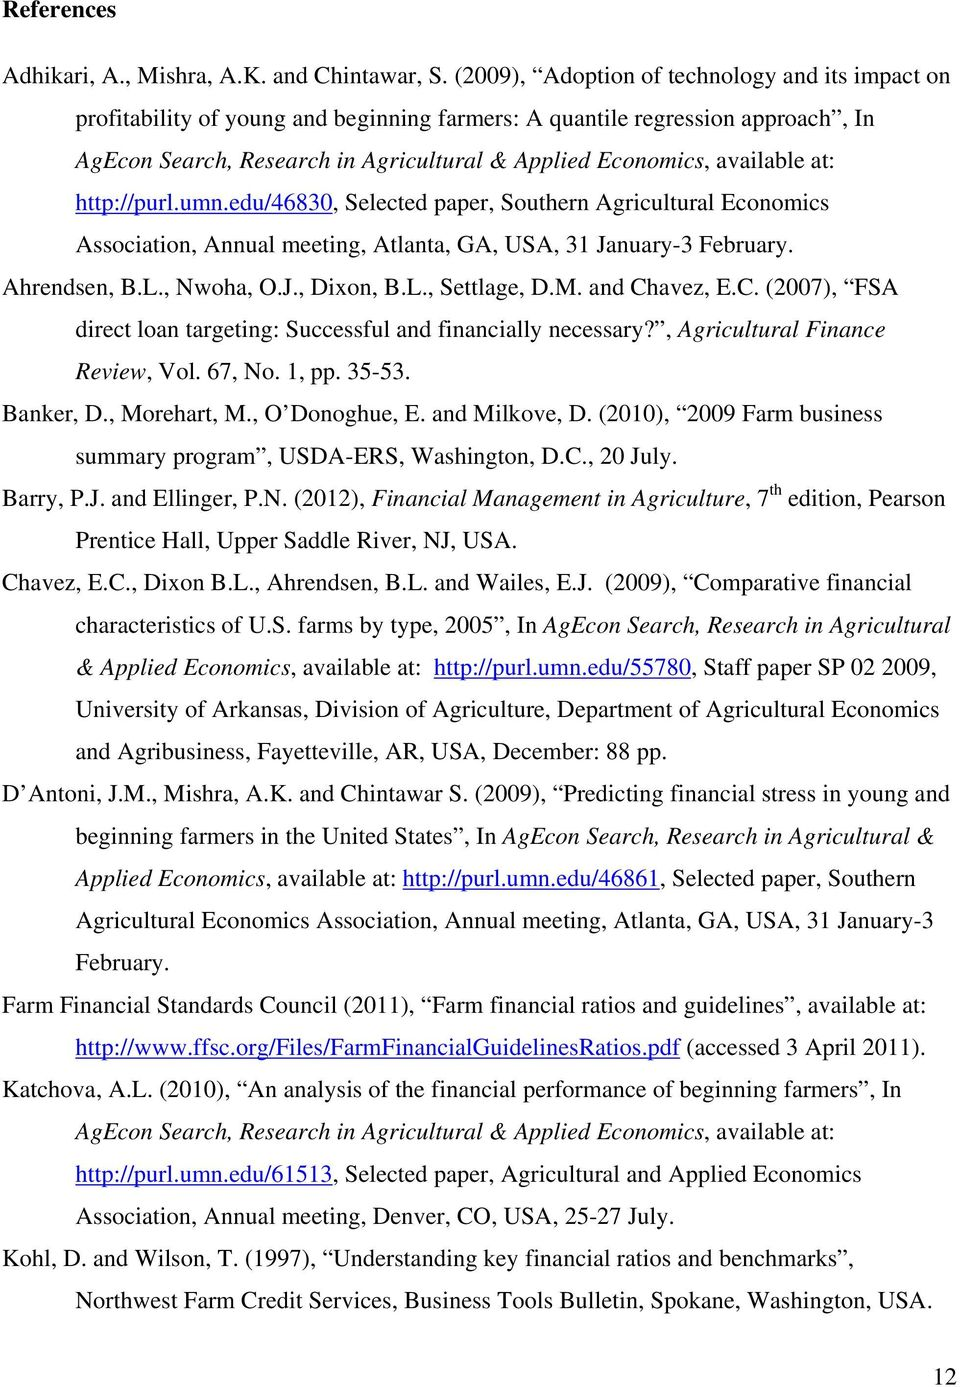 available at: http://purl.umn.edu/46830, Selected paper, Southern Agricultural Economics Association, Annual meeting, Atlanta, GA, USA, 31 January-3 February. Ahrendsen, B.L., Nwoha, O.J., Dixon, B.L., Settlage, D.